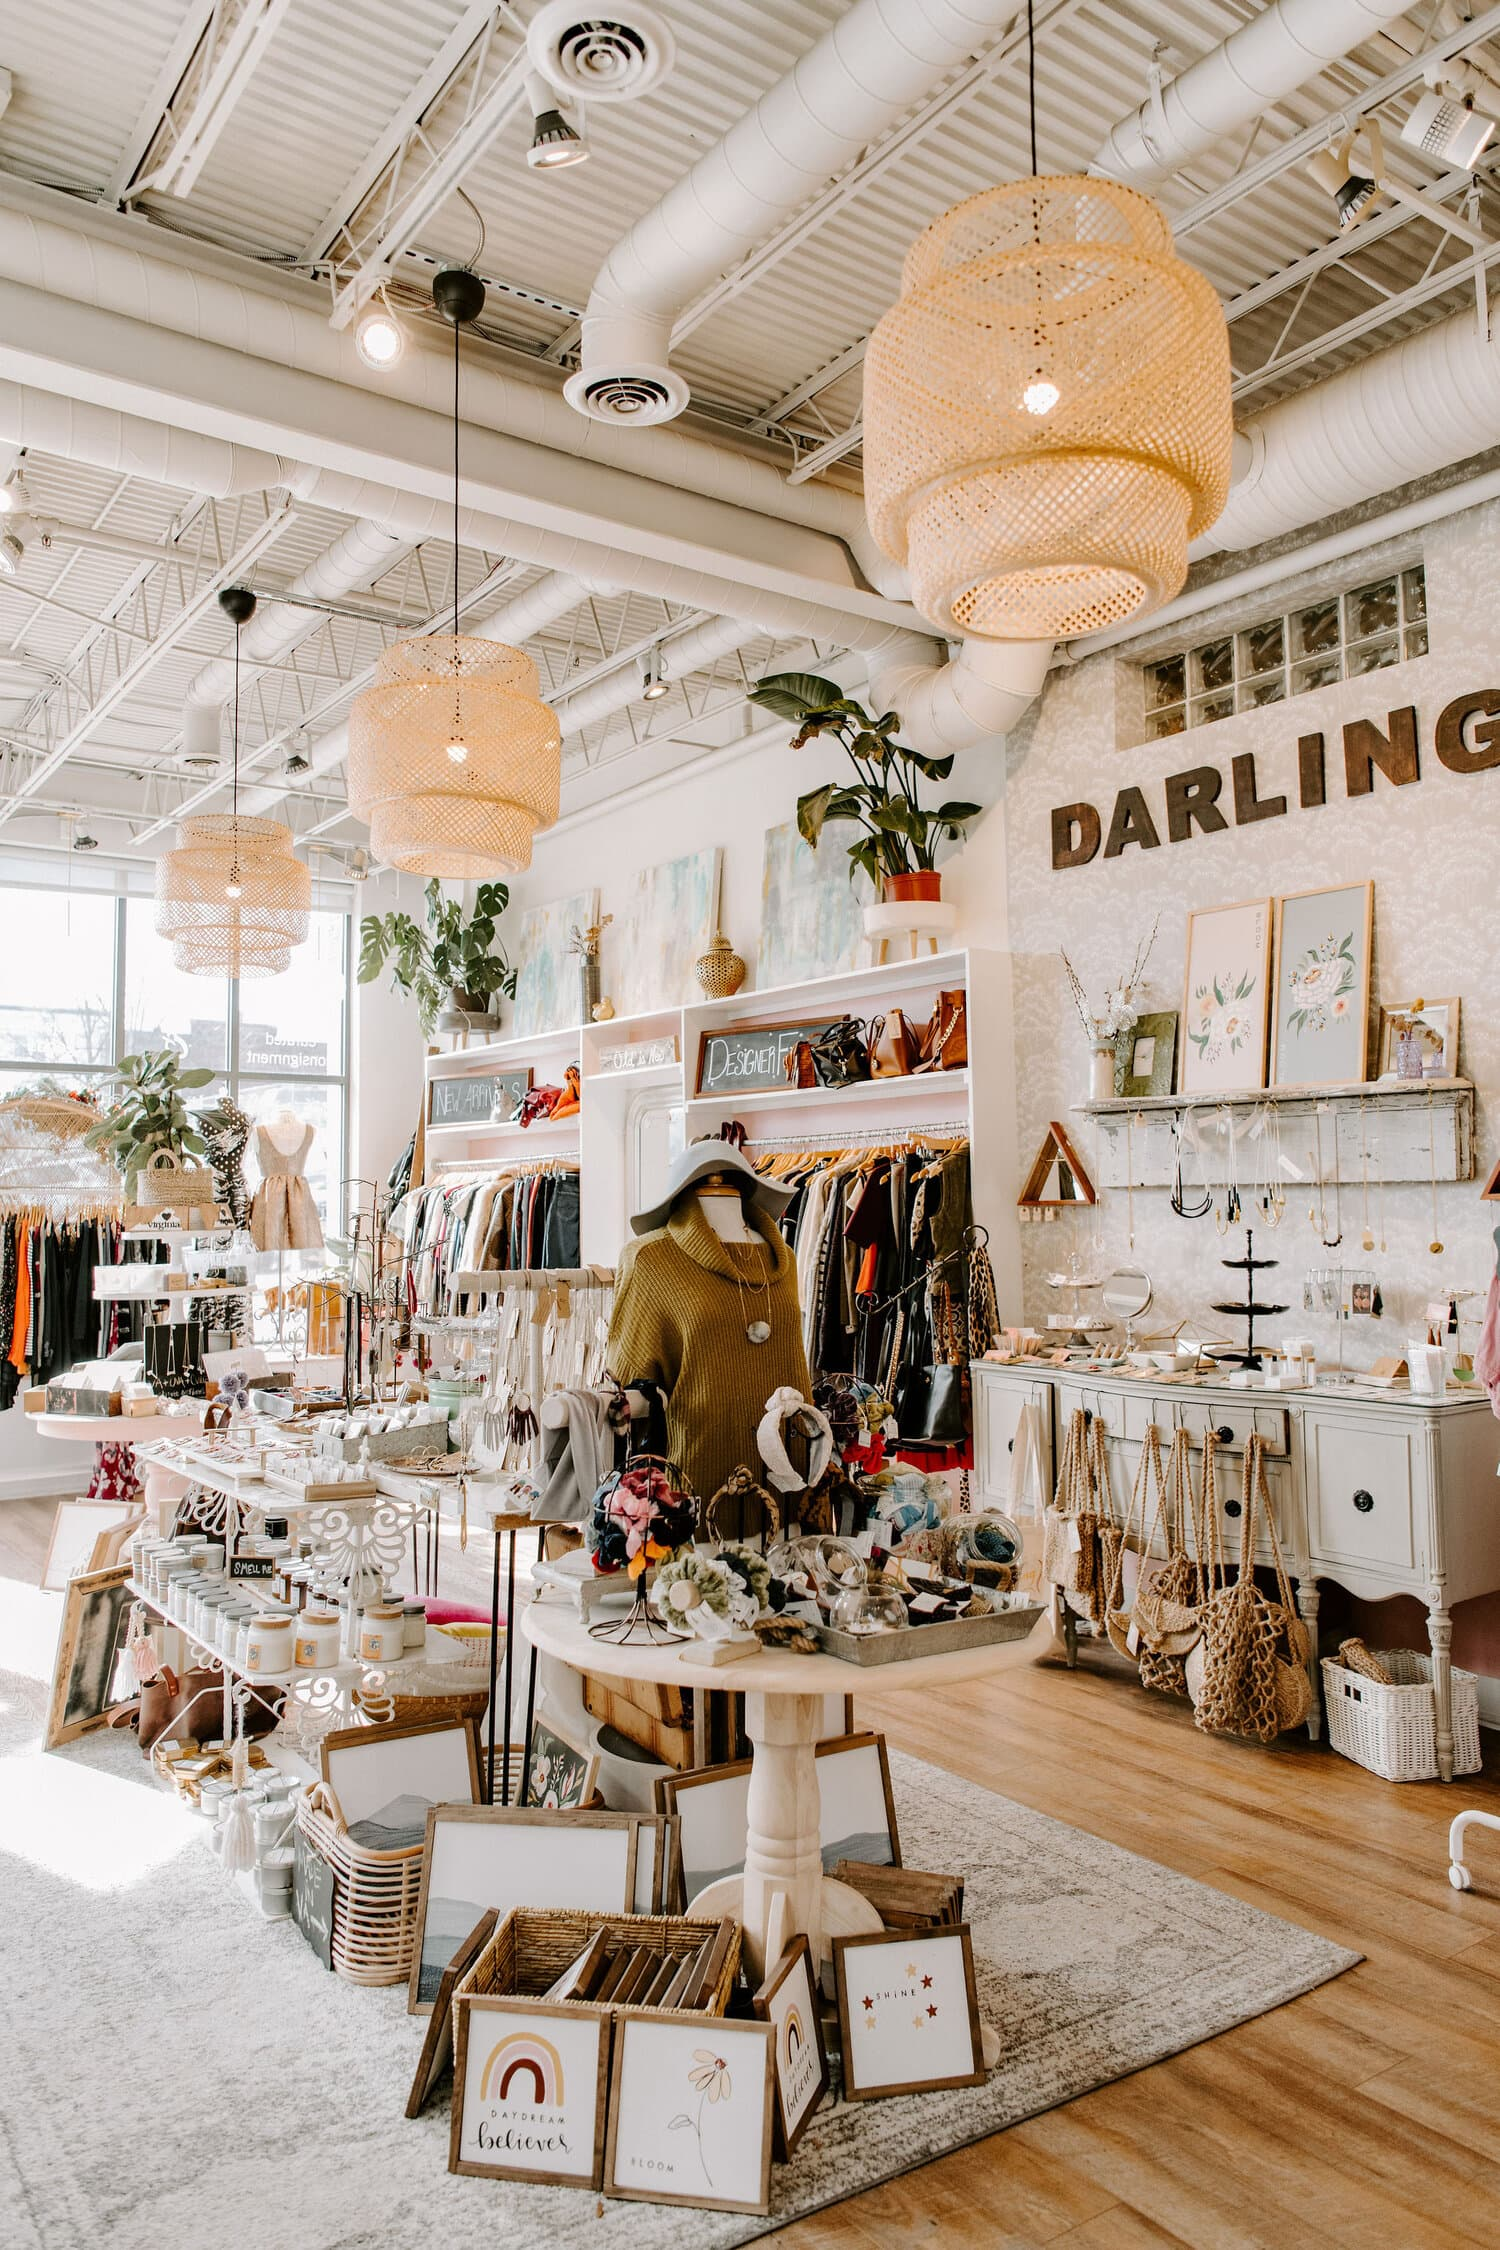 Darling Boutique in store picture